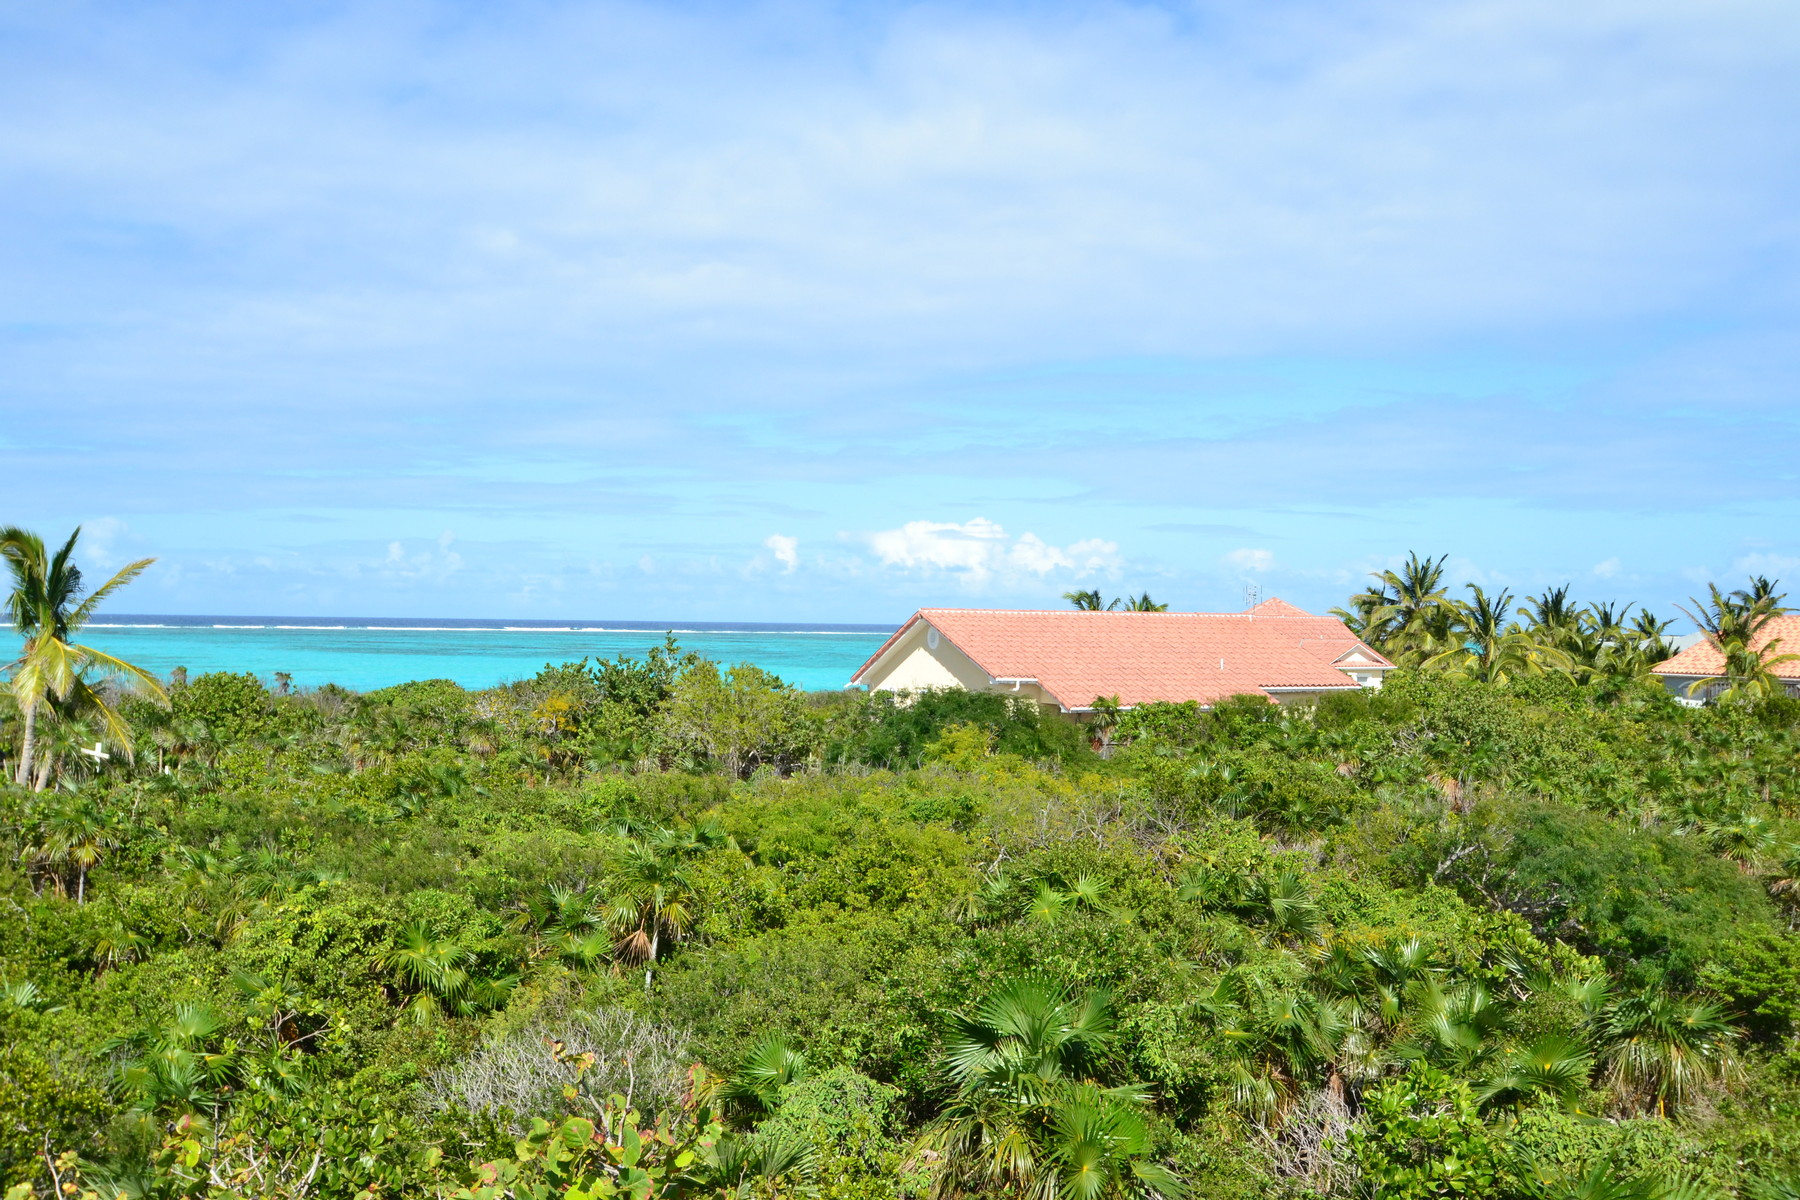 Single Family Home for Sale at Ocean View Villa - Whitby Ocean View Villa Whitby, North Caicos TCI BWI Turks And Caicos Islands